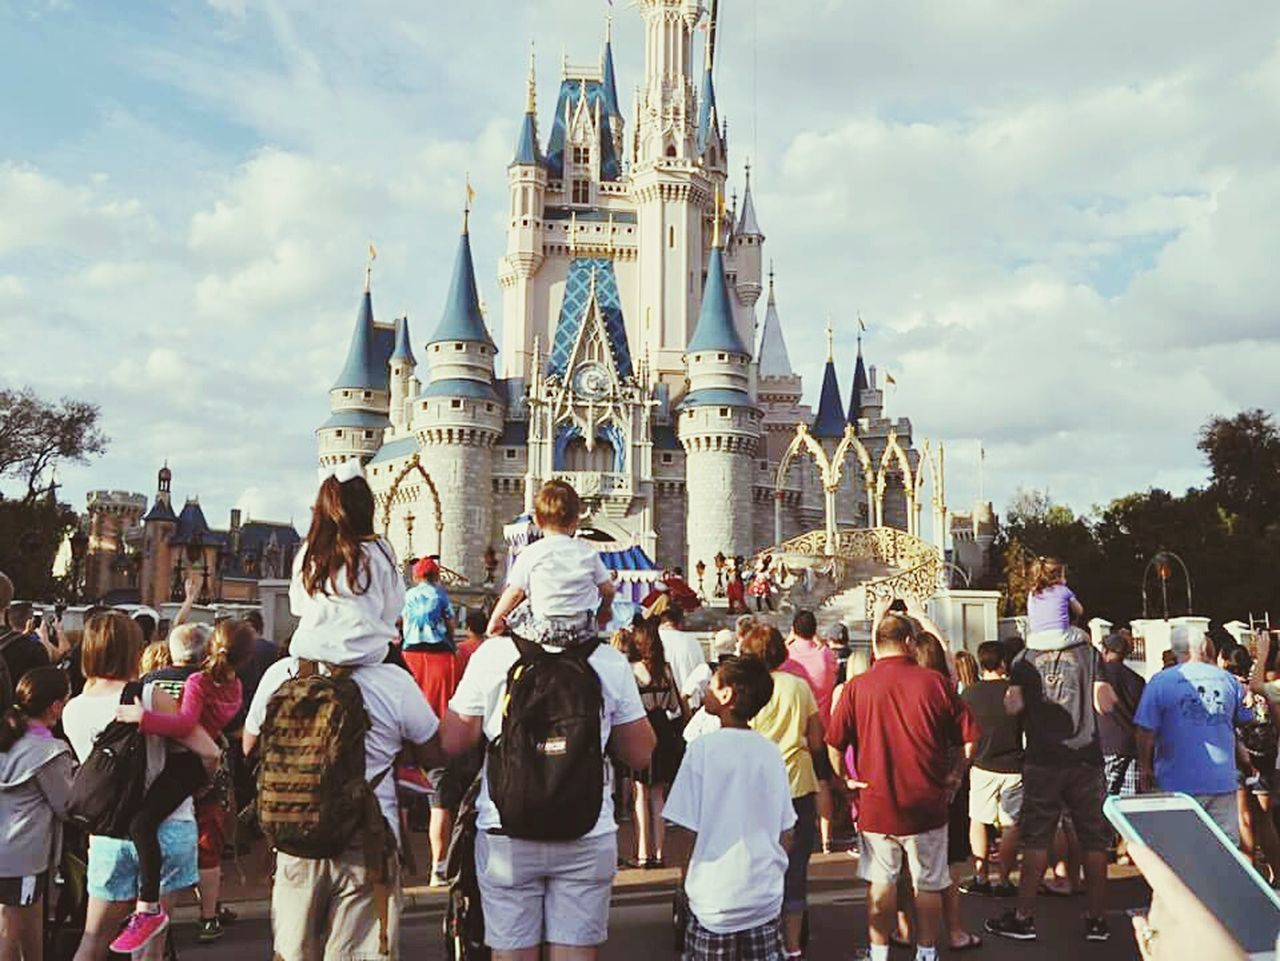 Travel Destinations DisneyWorld Tourism Large Group Of People Built Structure Architecture Tourist People Unity EyeEmNewHere Travel Cinderella Vacation Adapted To The City